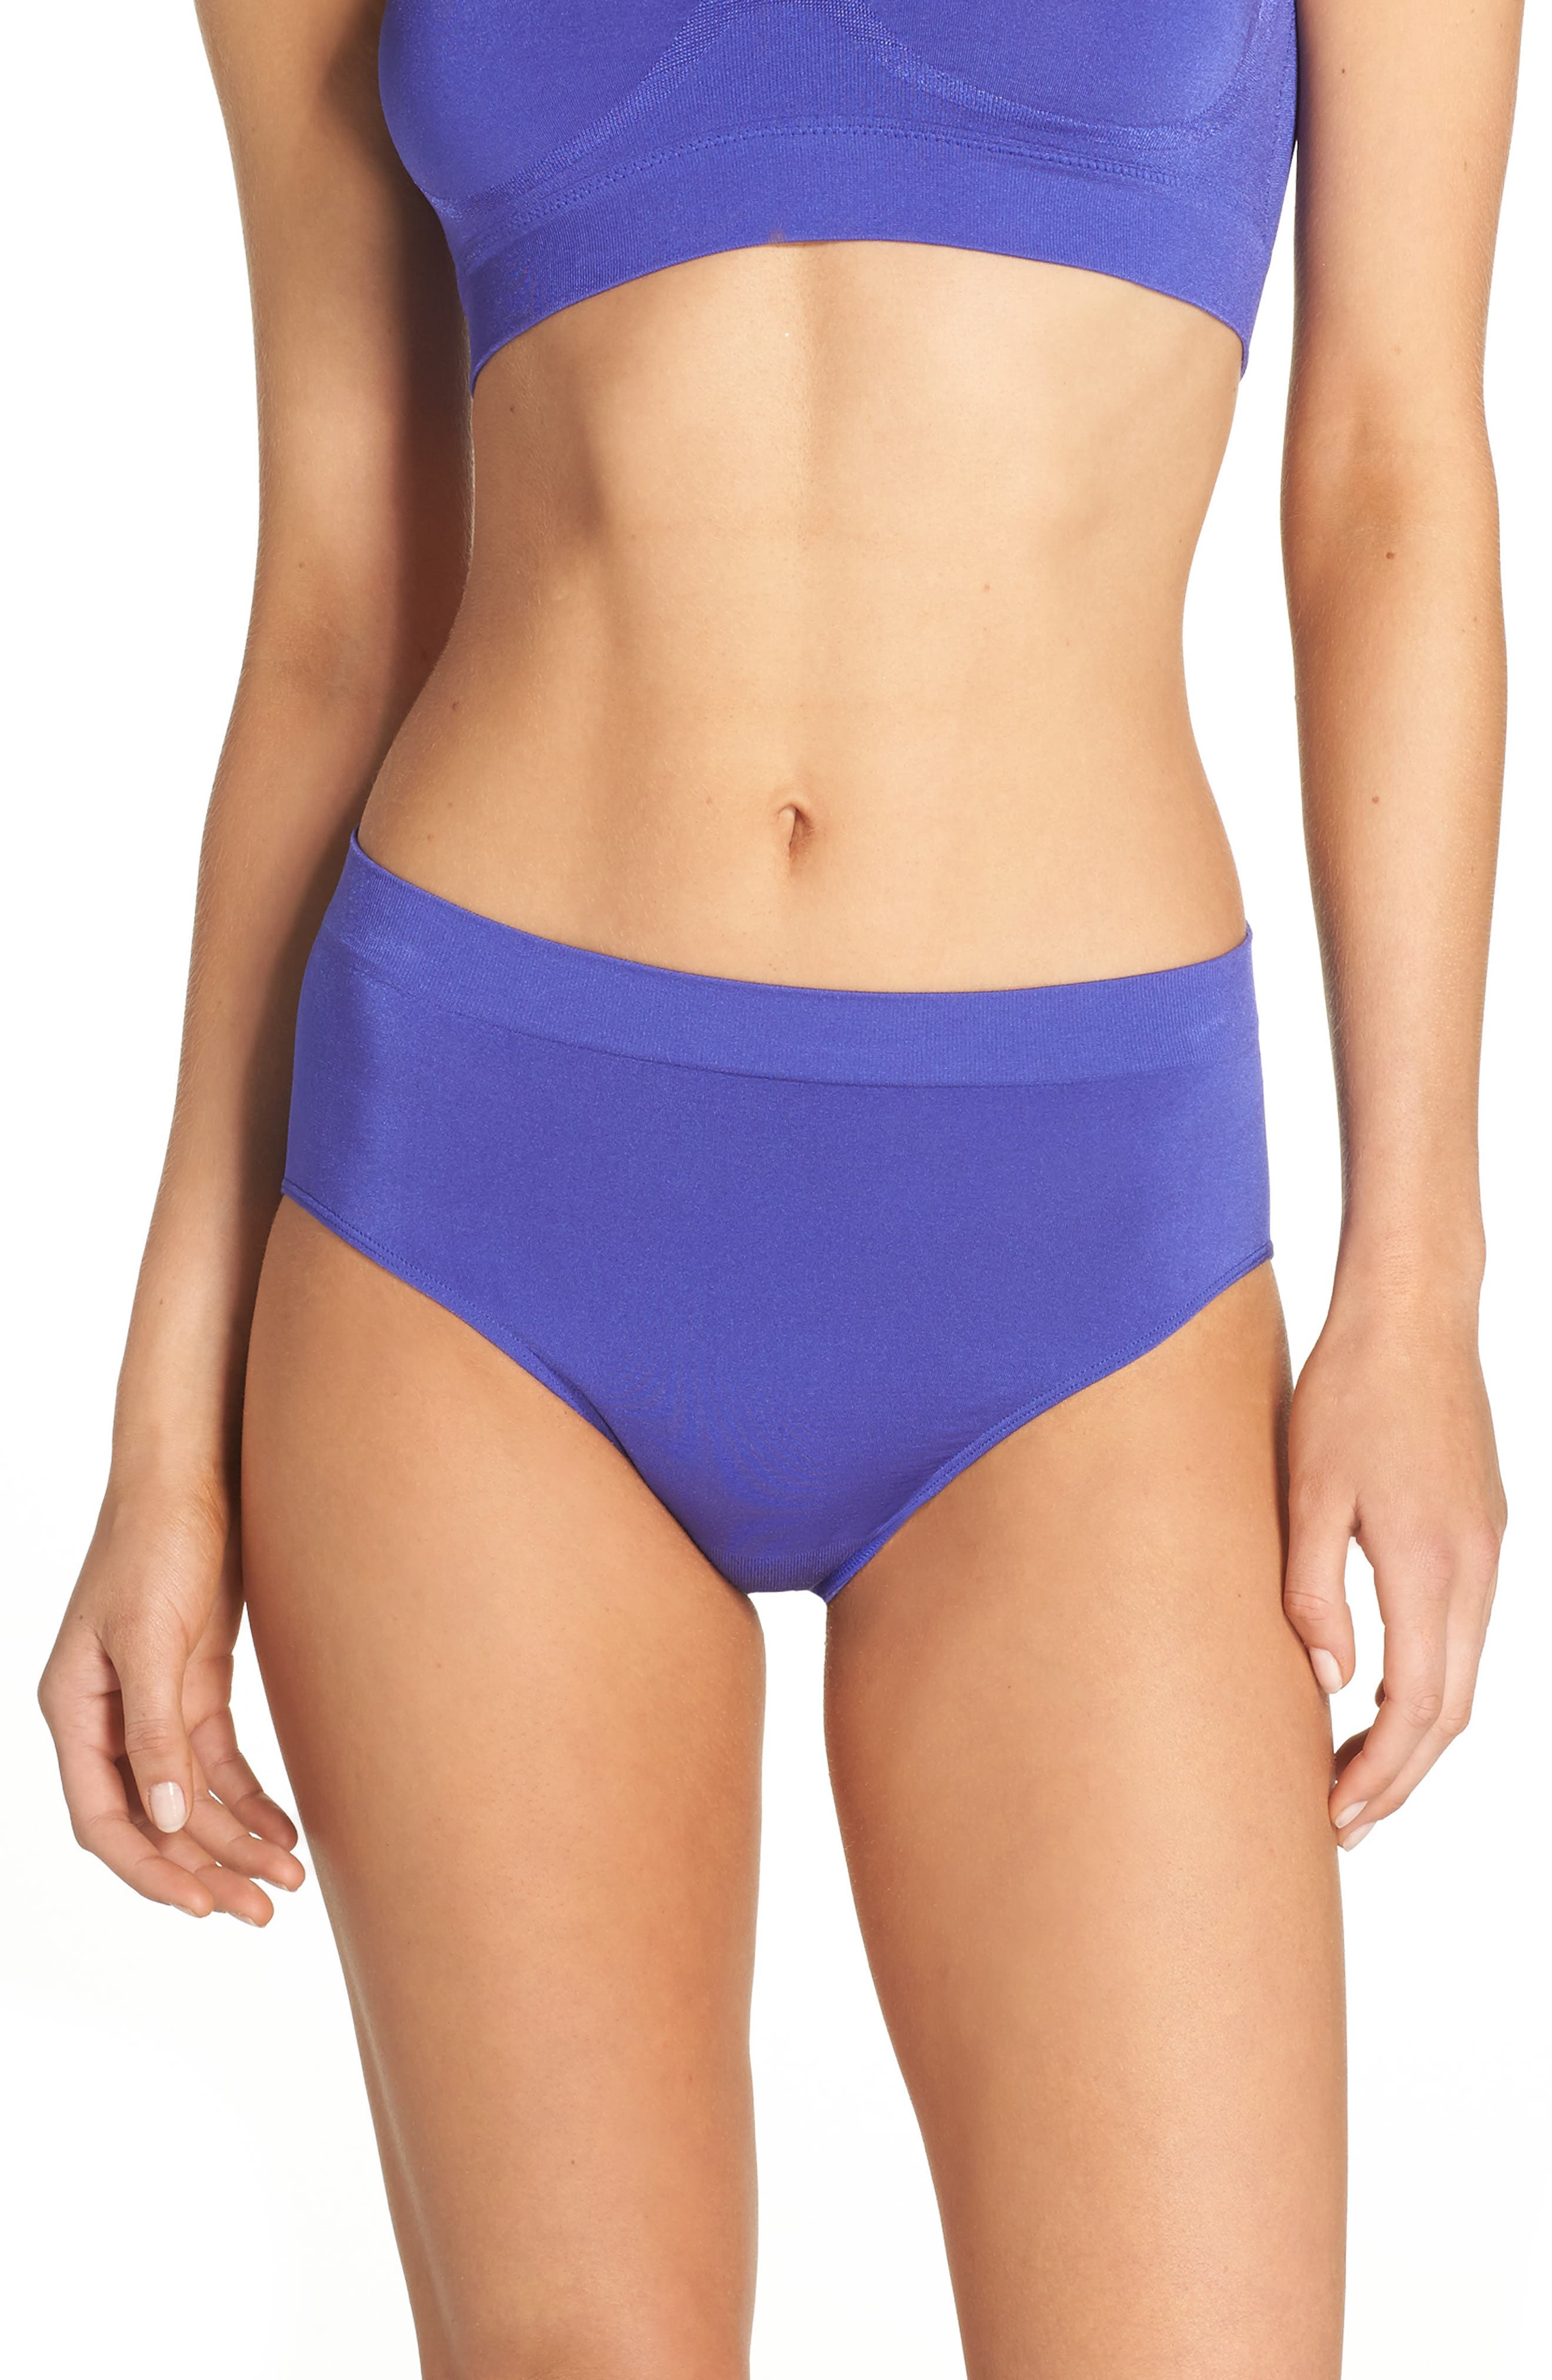 Alternate Image 1 Selected - Wacoal B Smooth High Cut Briefs (3 for $39)